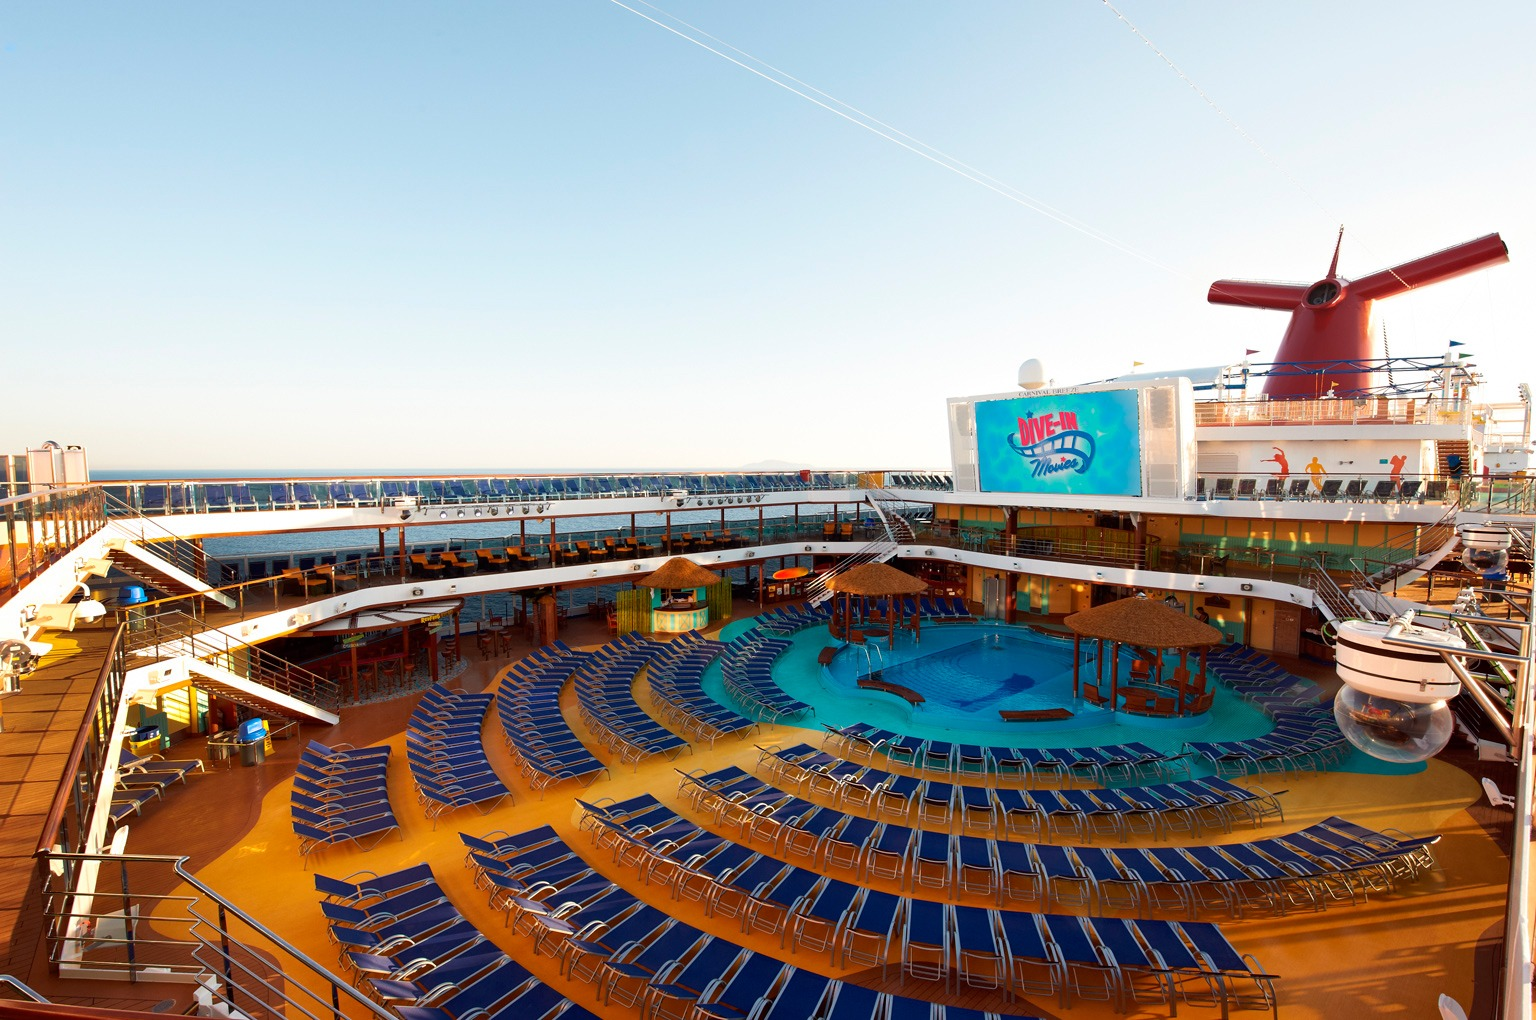 Bermuda Cruise with Carnival Breeze on 07/09/2019 (20190907BR07) on